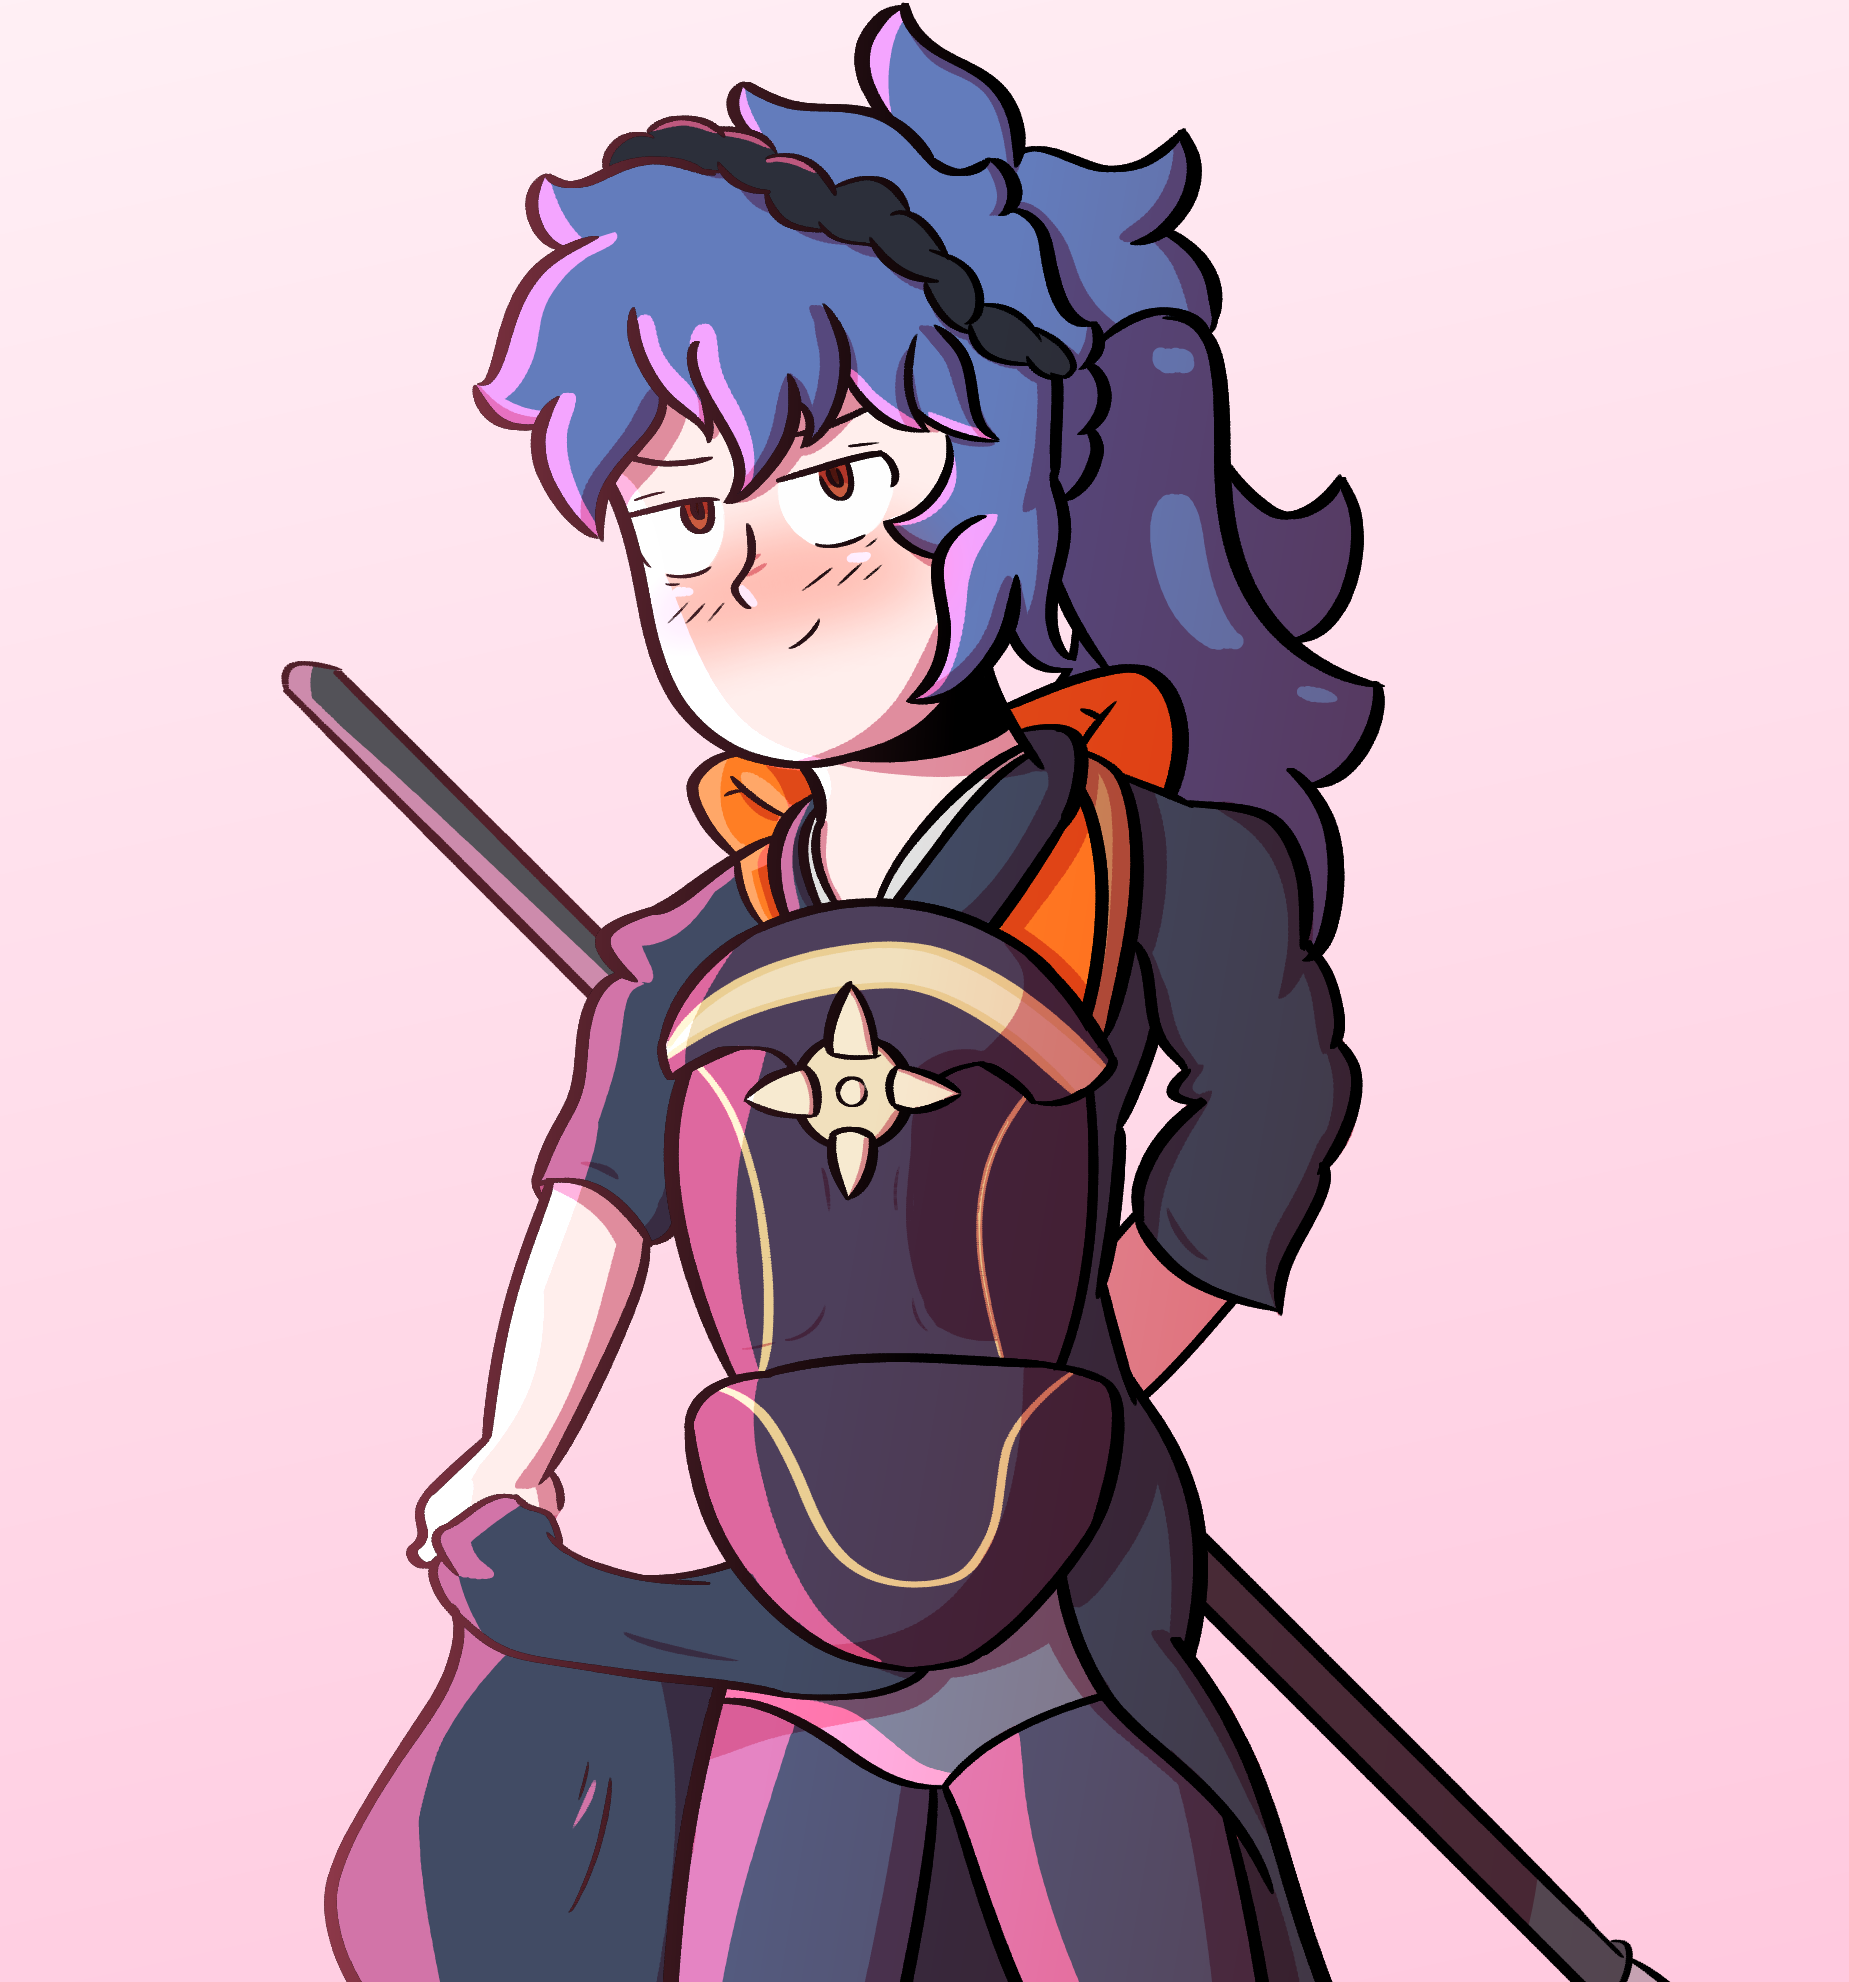 Oboro From Fire Emblem Looking Fly AF